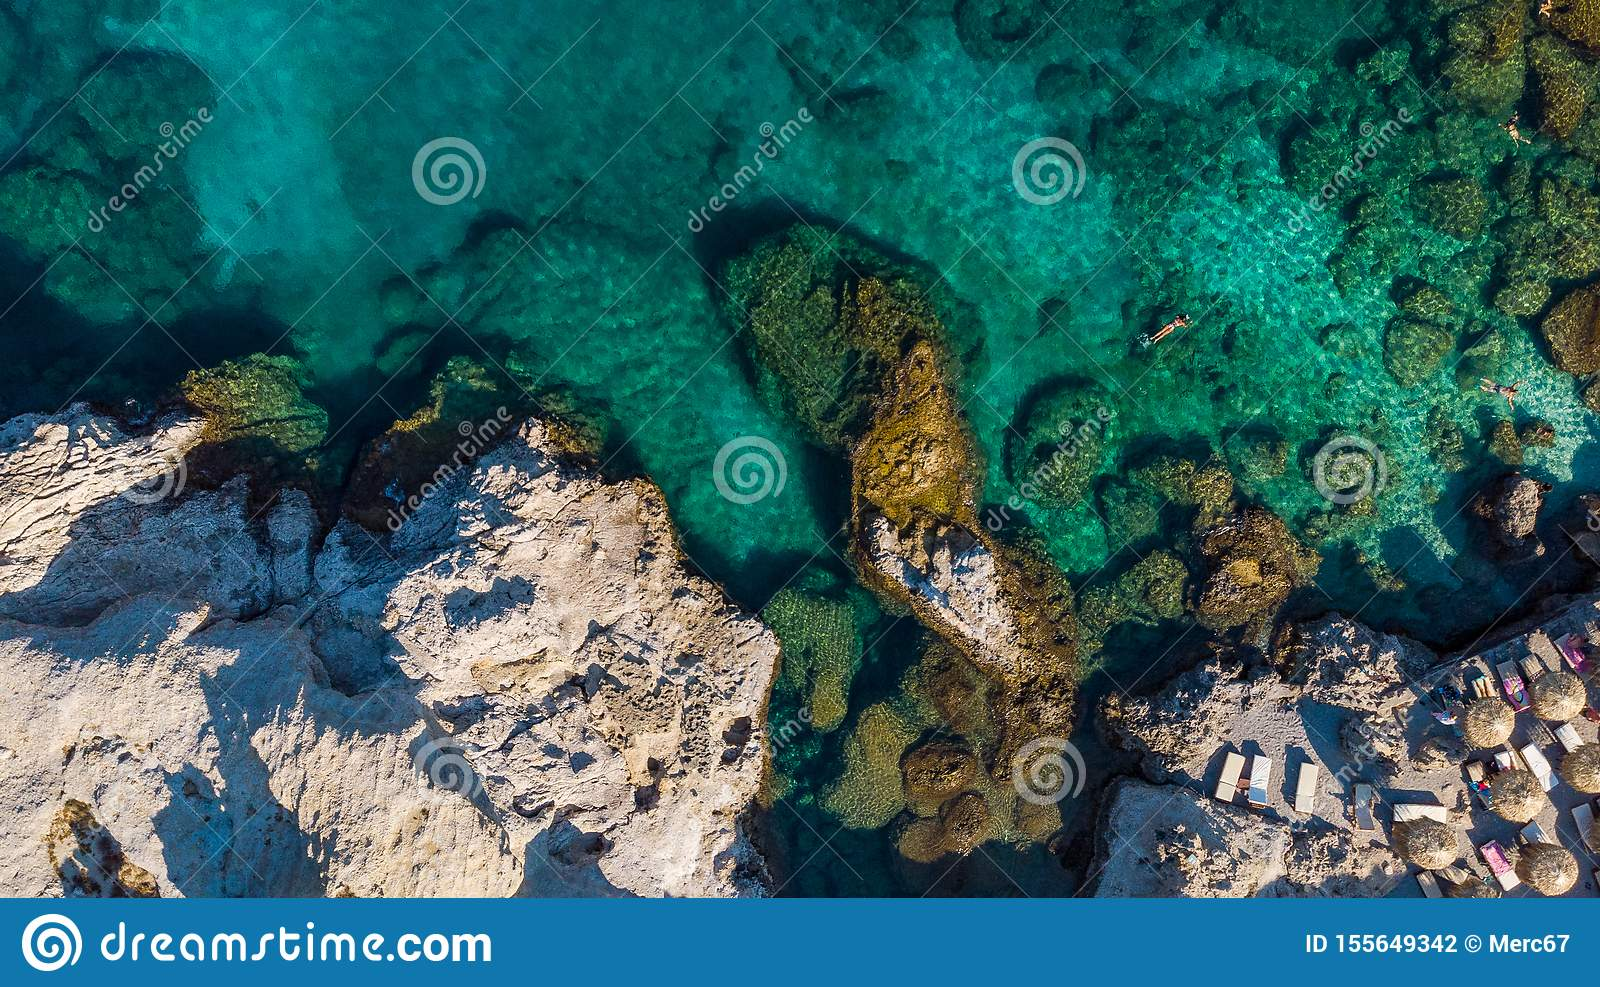 Turquoise Water and Rocky Shore on Greek Island, Aerial top Down View